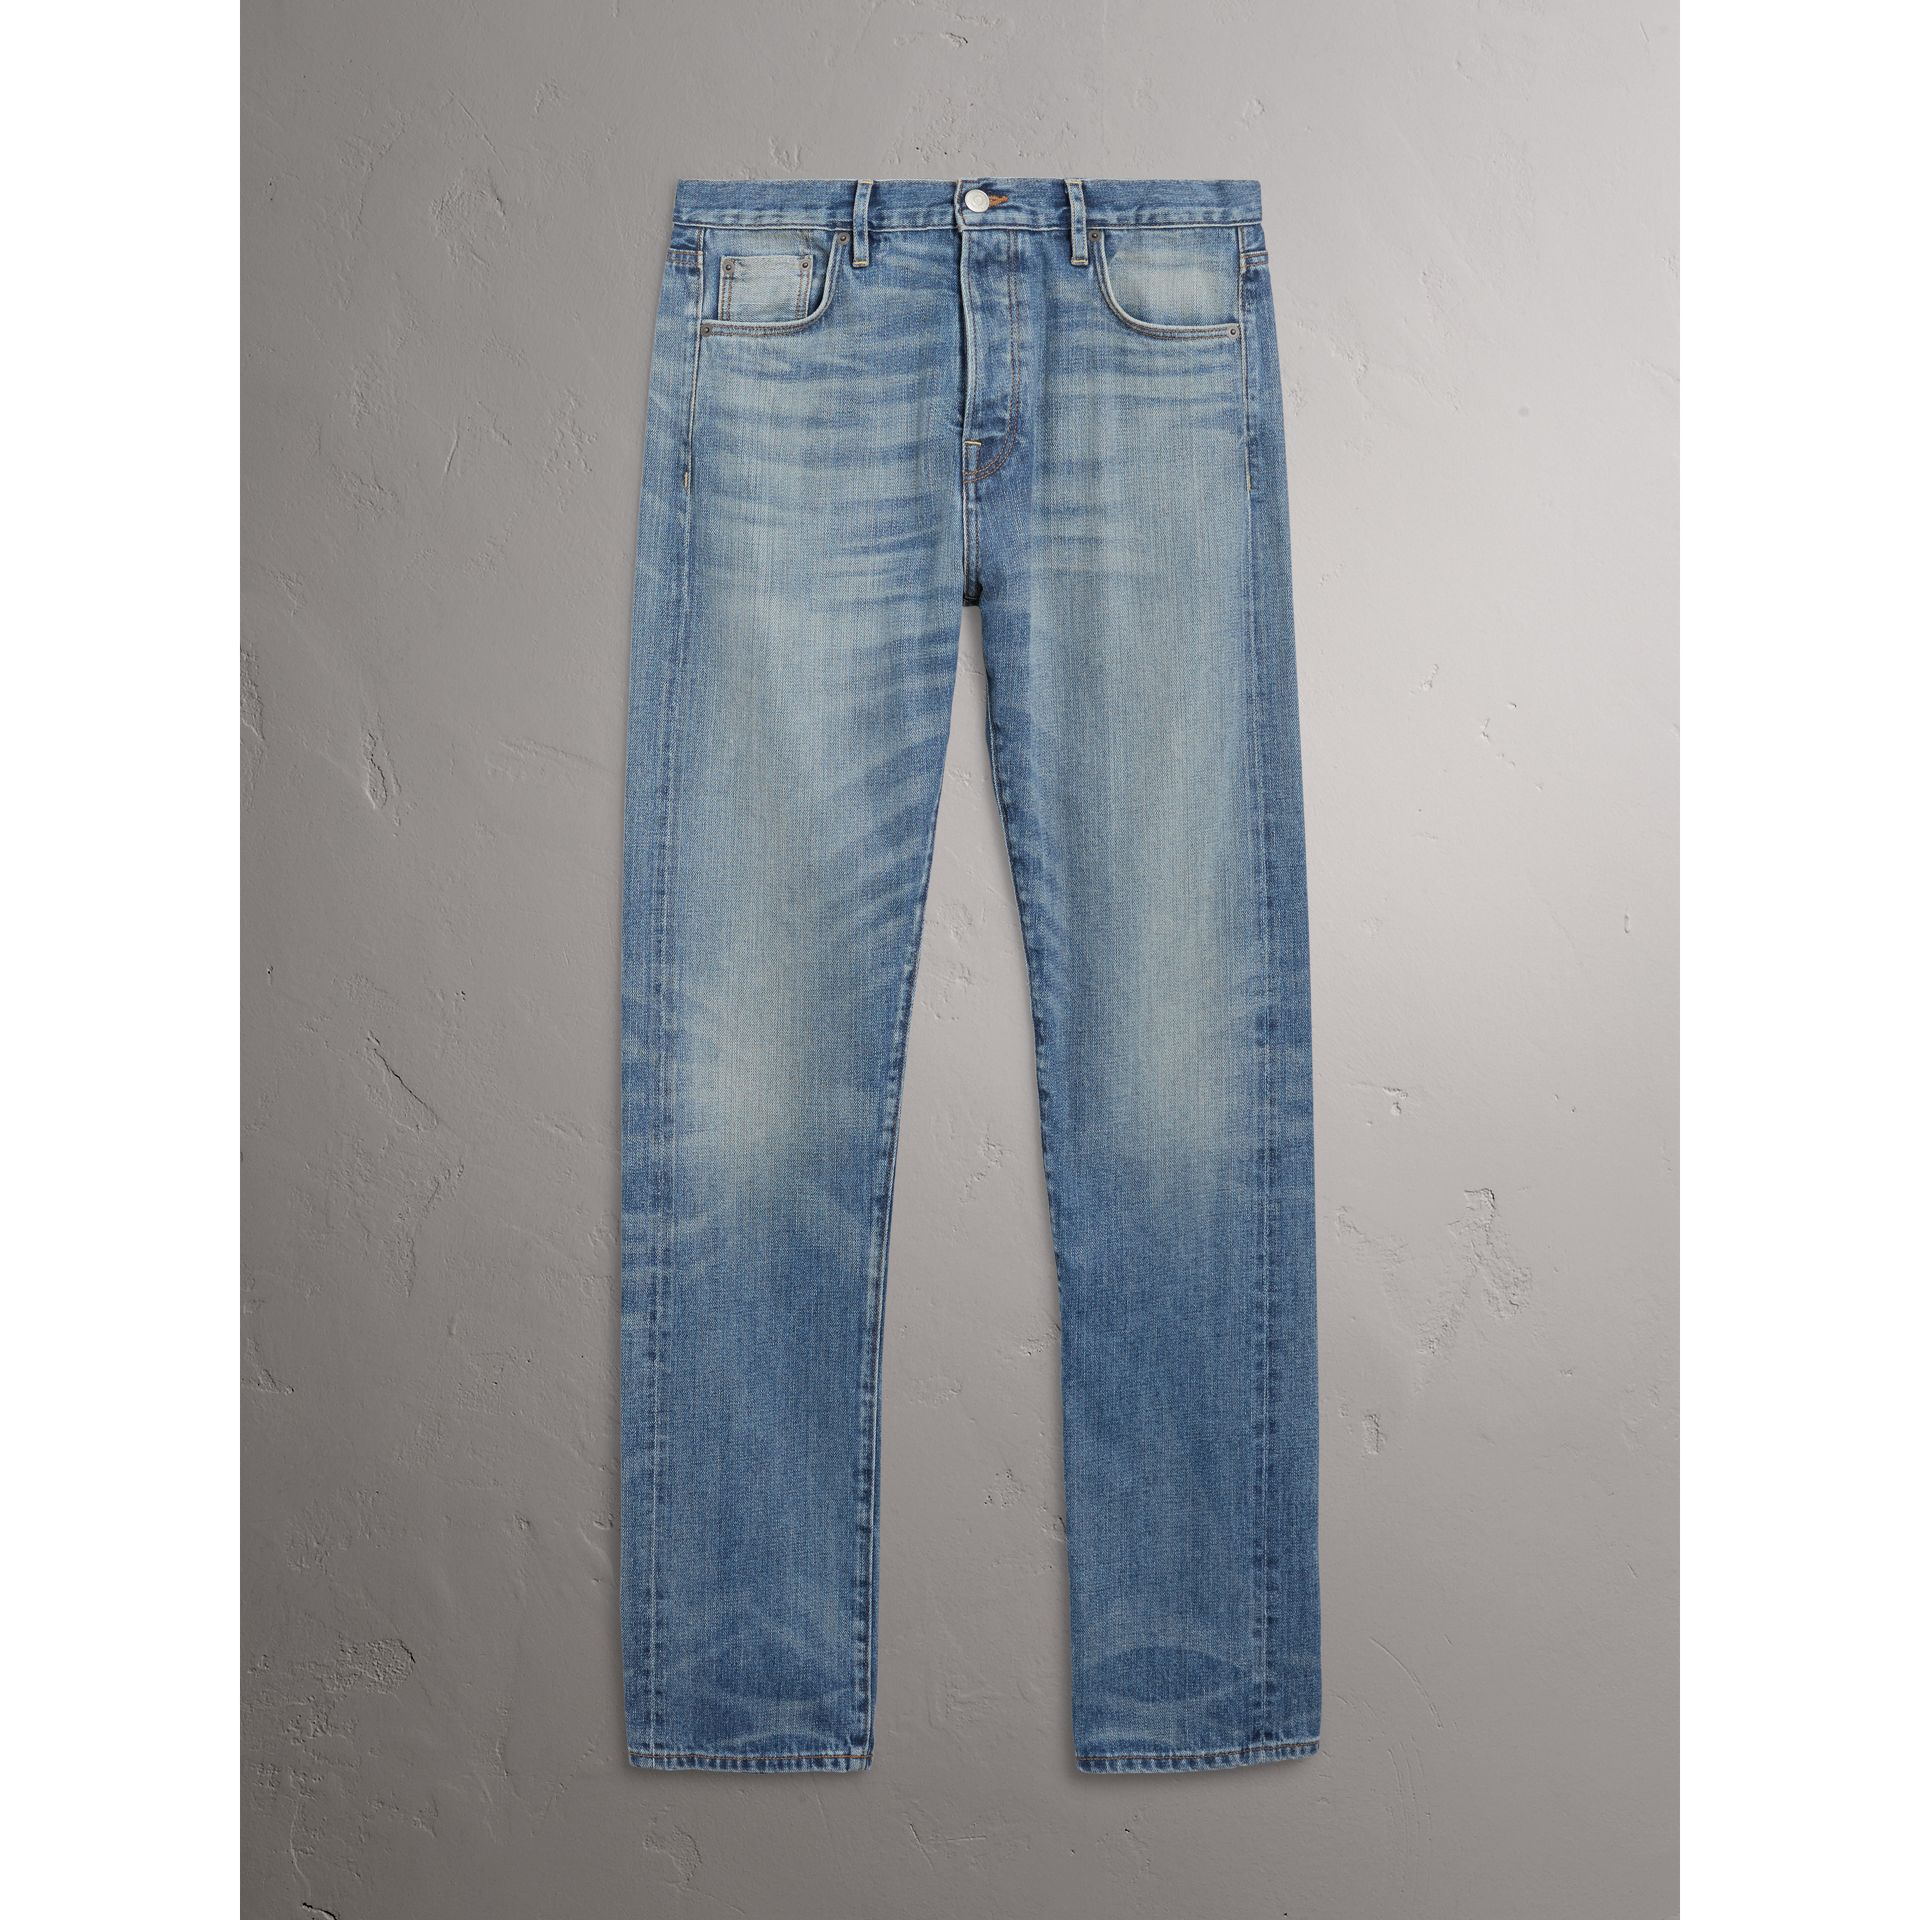 Burberry Light Indigo Relaxed Fit Washed Japanese Selvedge Denim Jeans